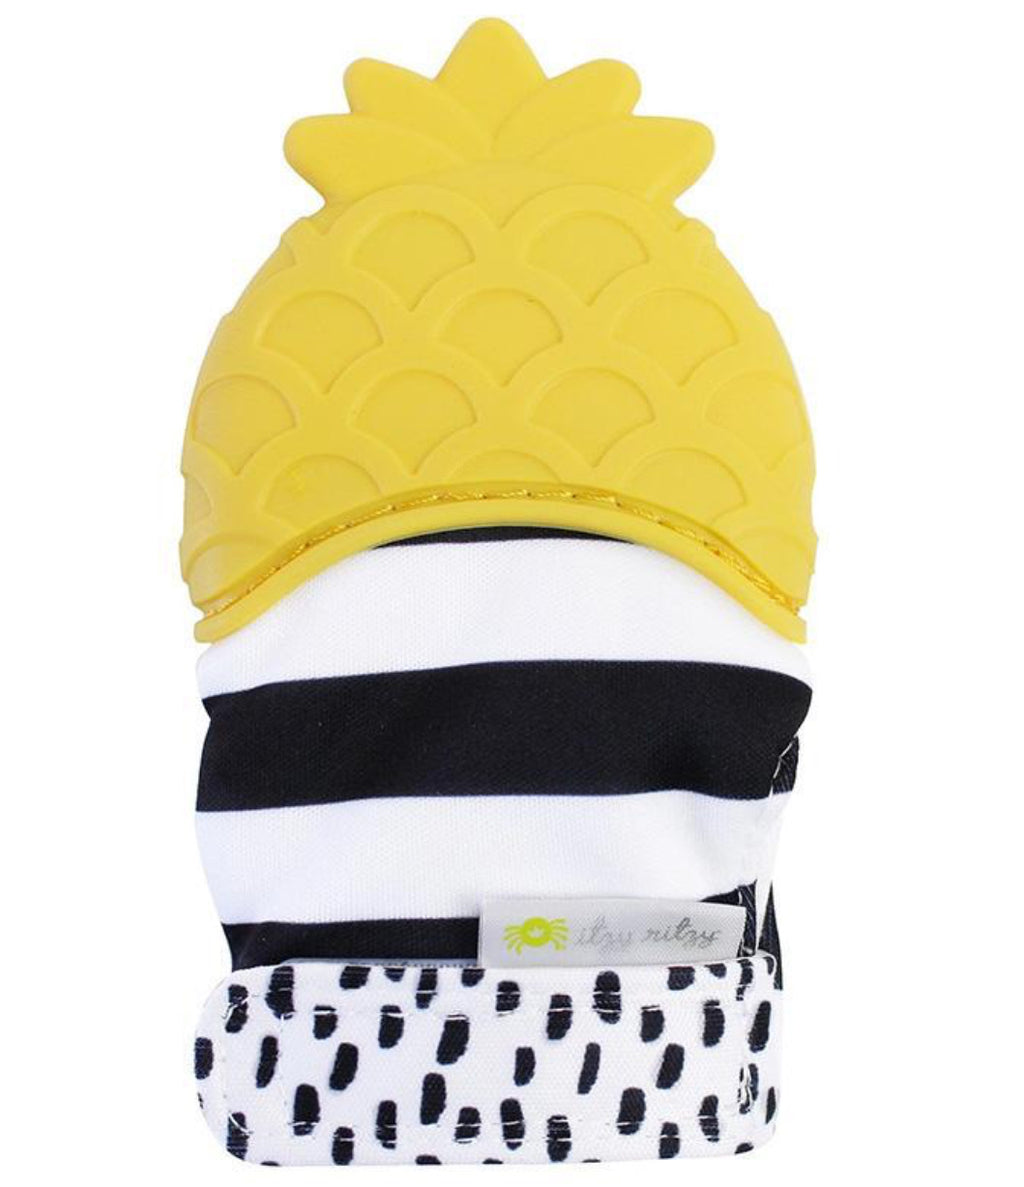 Itzy Ritzy - Itzy Mitt™ Silicone Teething Mitts - Monogram Gifts